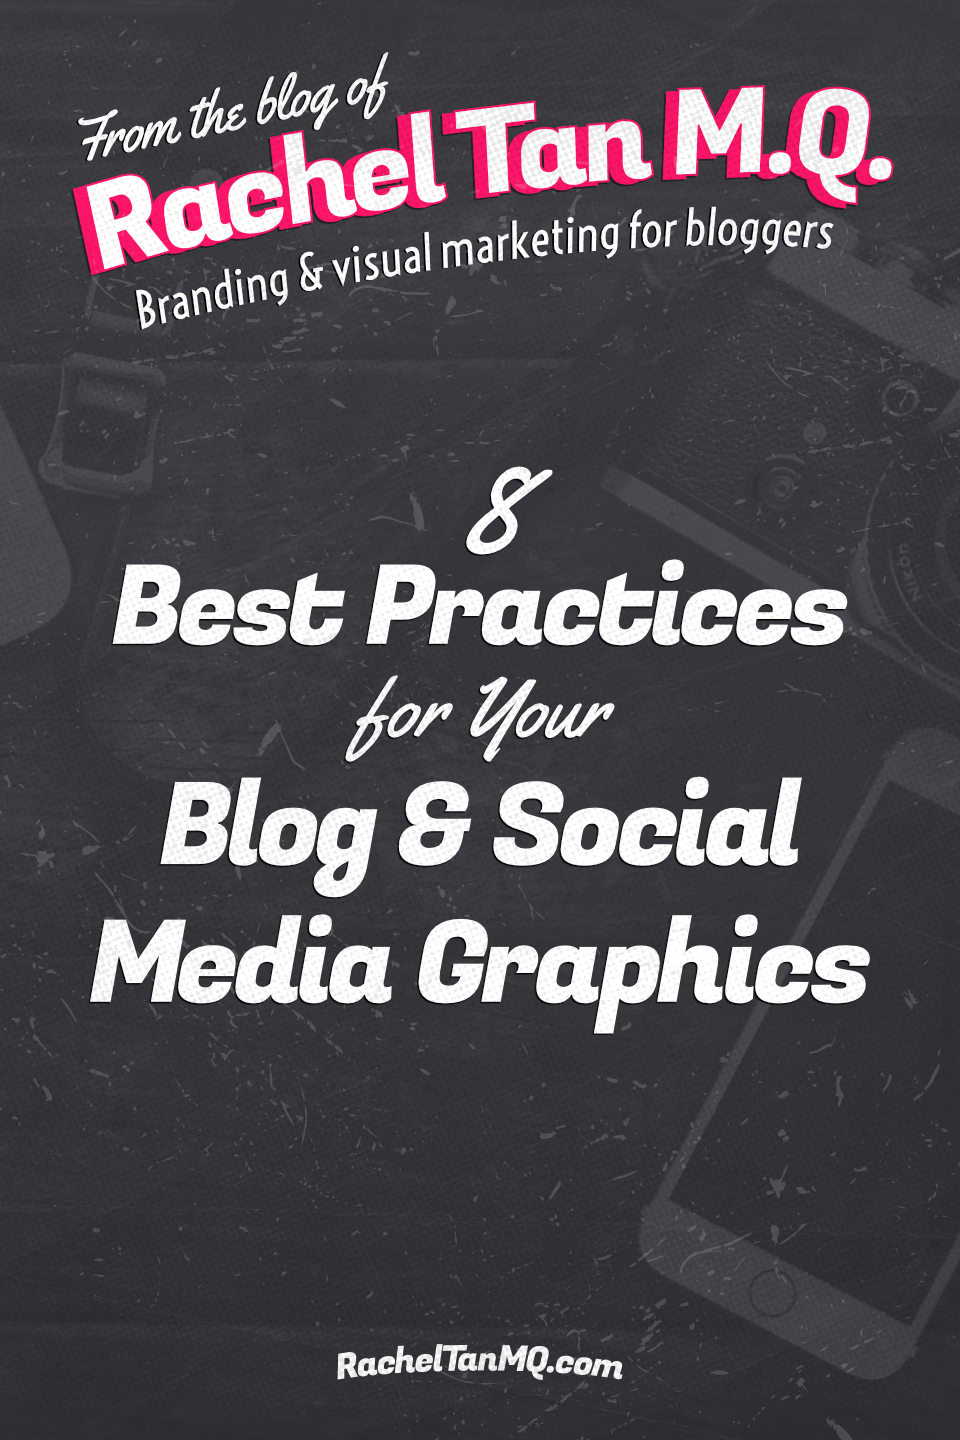 Looking for tips on how to design blog graphics that get shit-tons of clicks on social media? This post is for you! #visualmarketing #pinteresttips #pinterestmarketing #bloggraphics #graphicdesigntips